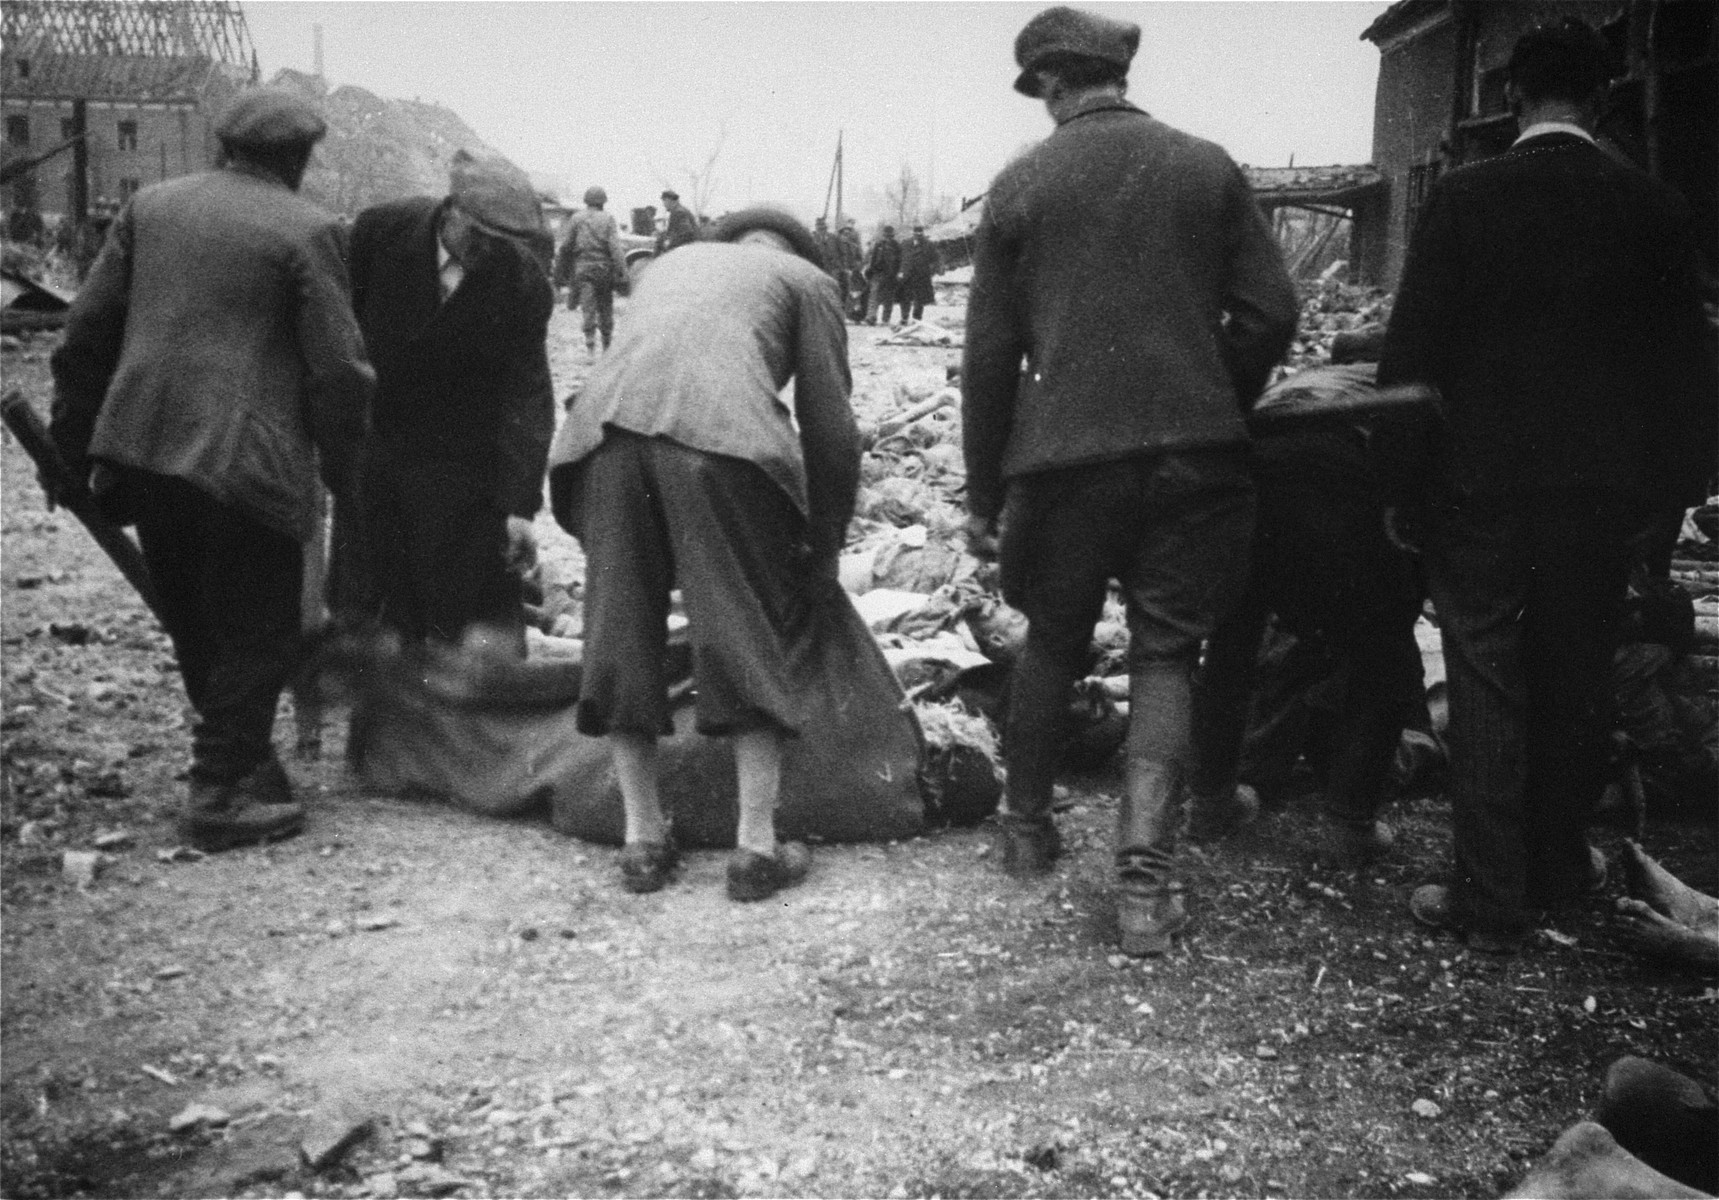 German civilians collect the corpses of prisoners killed in the Nordhausen concentration camp for burial in a mass grave.